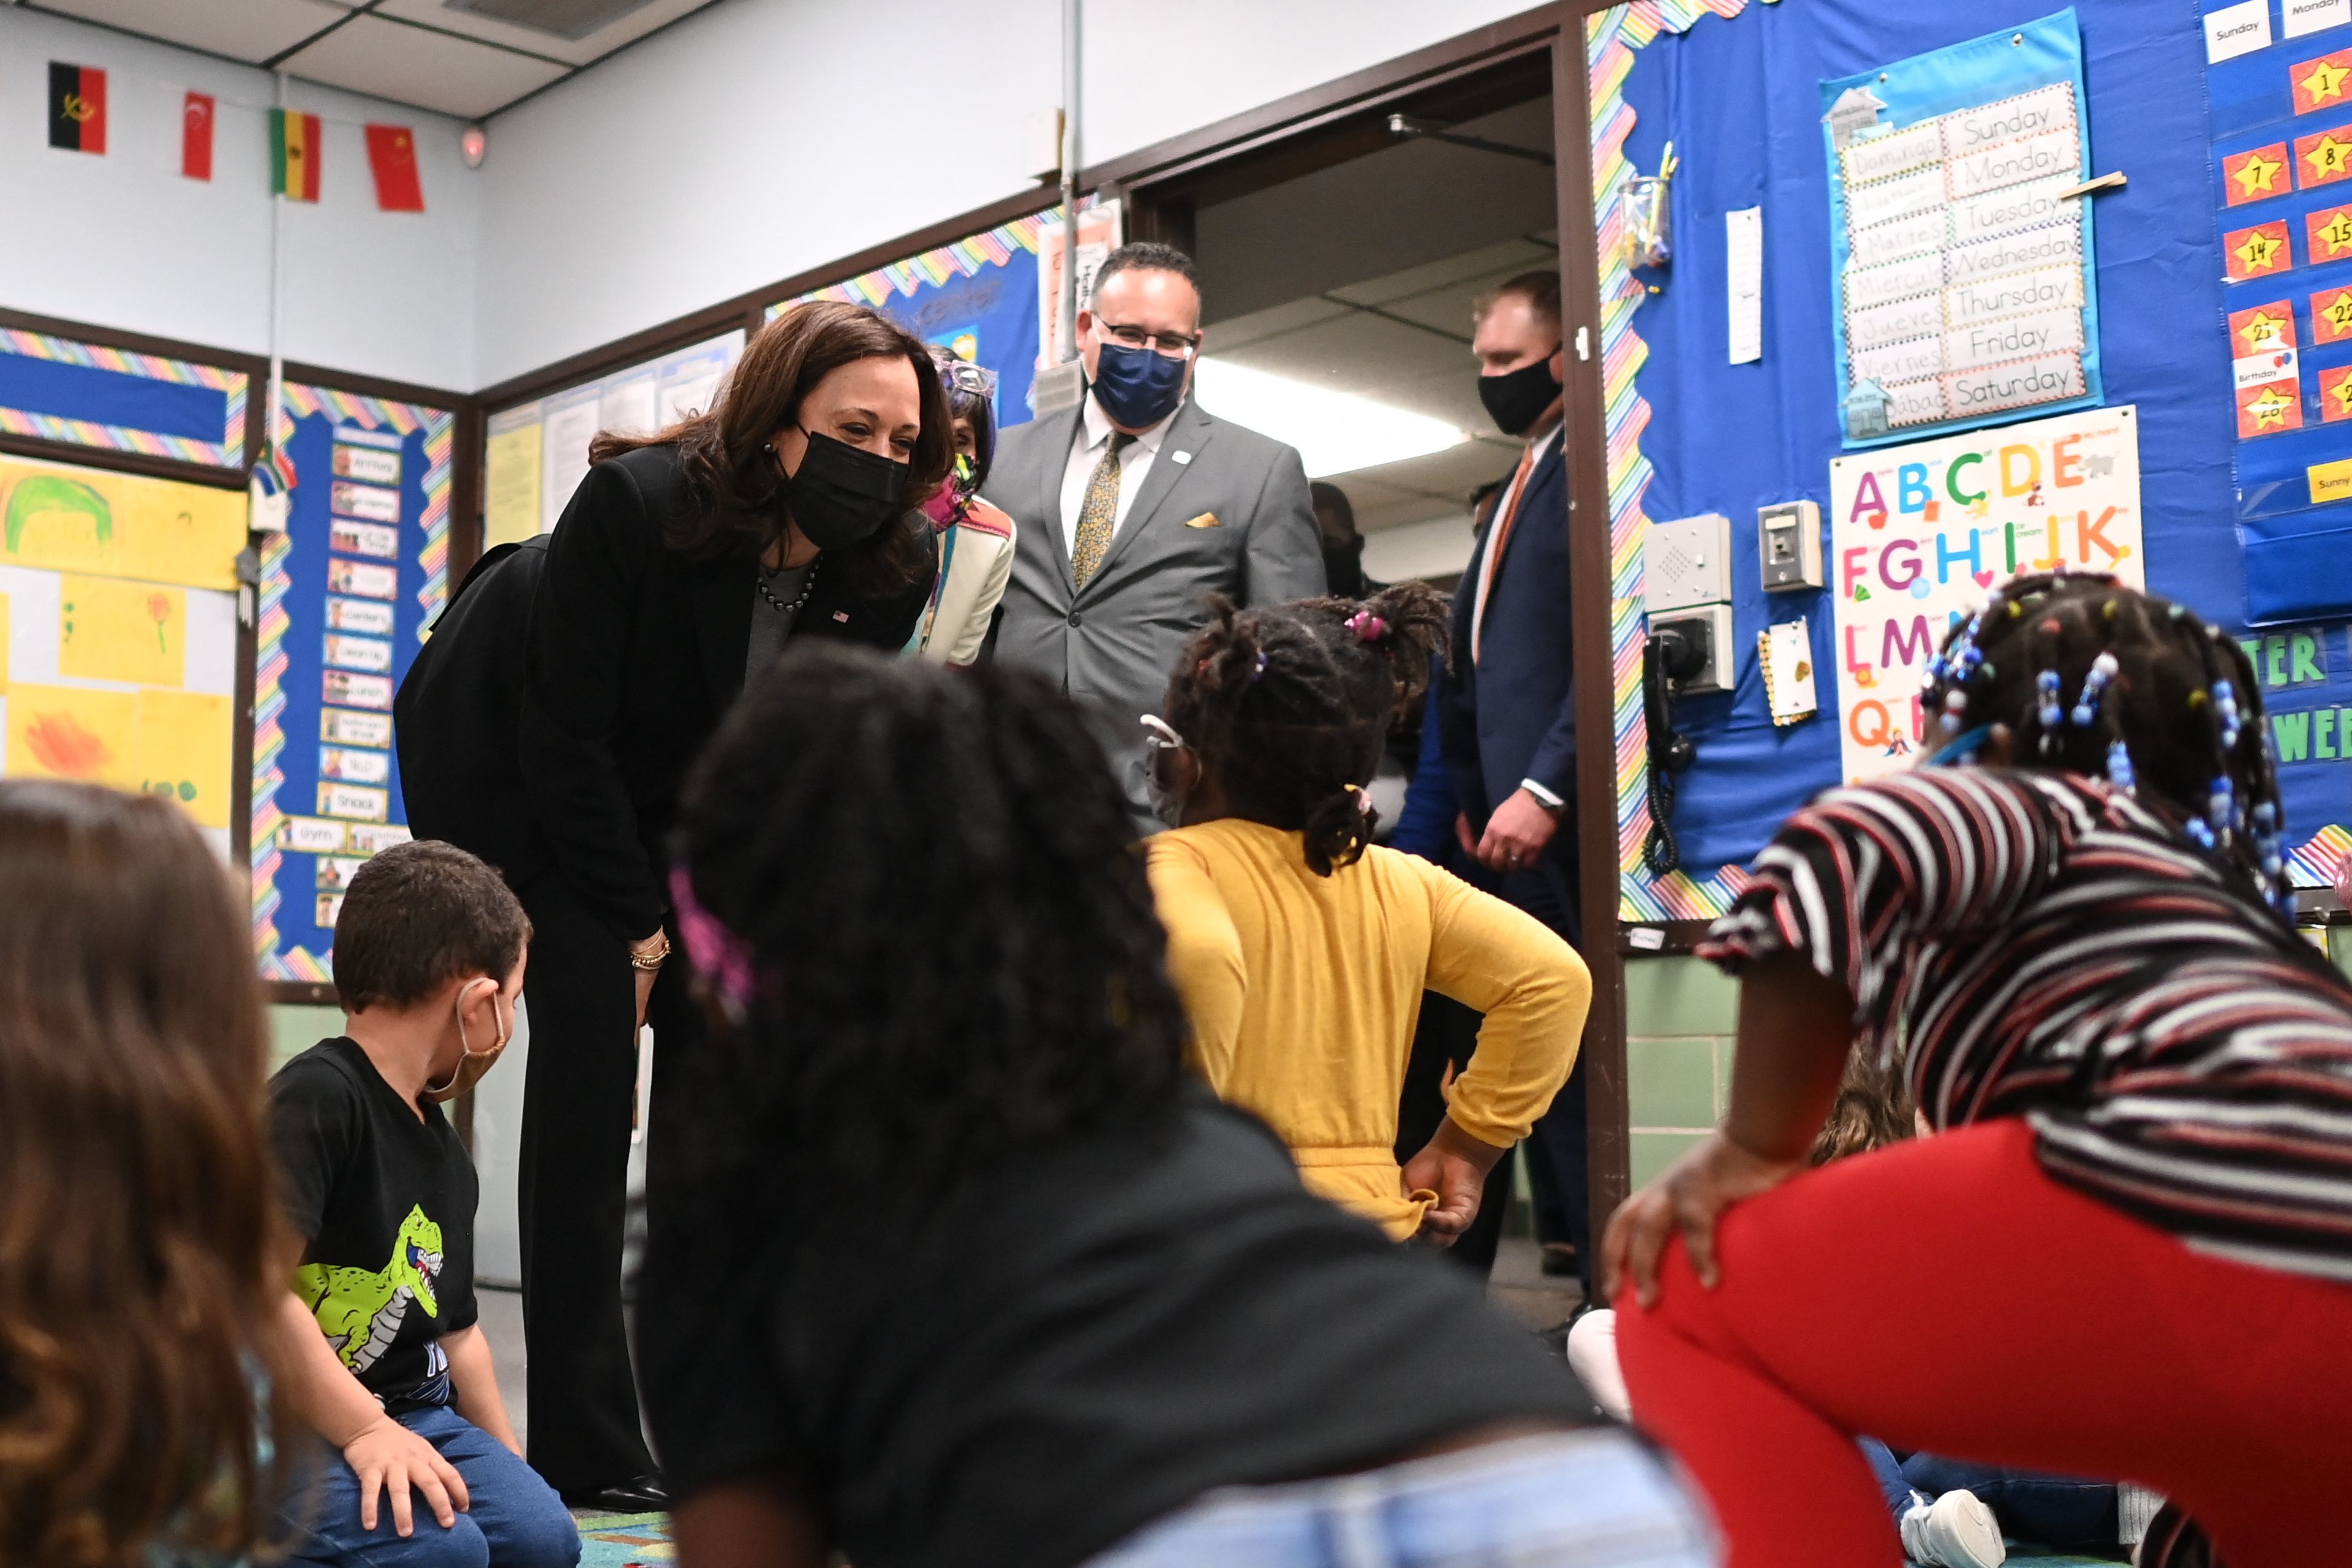 A classroom full of young children greet Vice President Kamala Harris, who is bending over to speak to the kids, as Secretary of Education Miguel Cardona stands behind her.